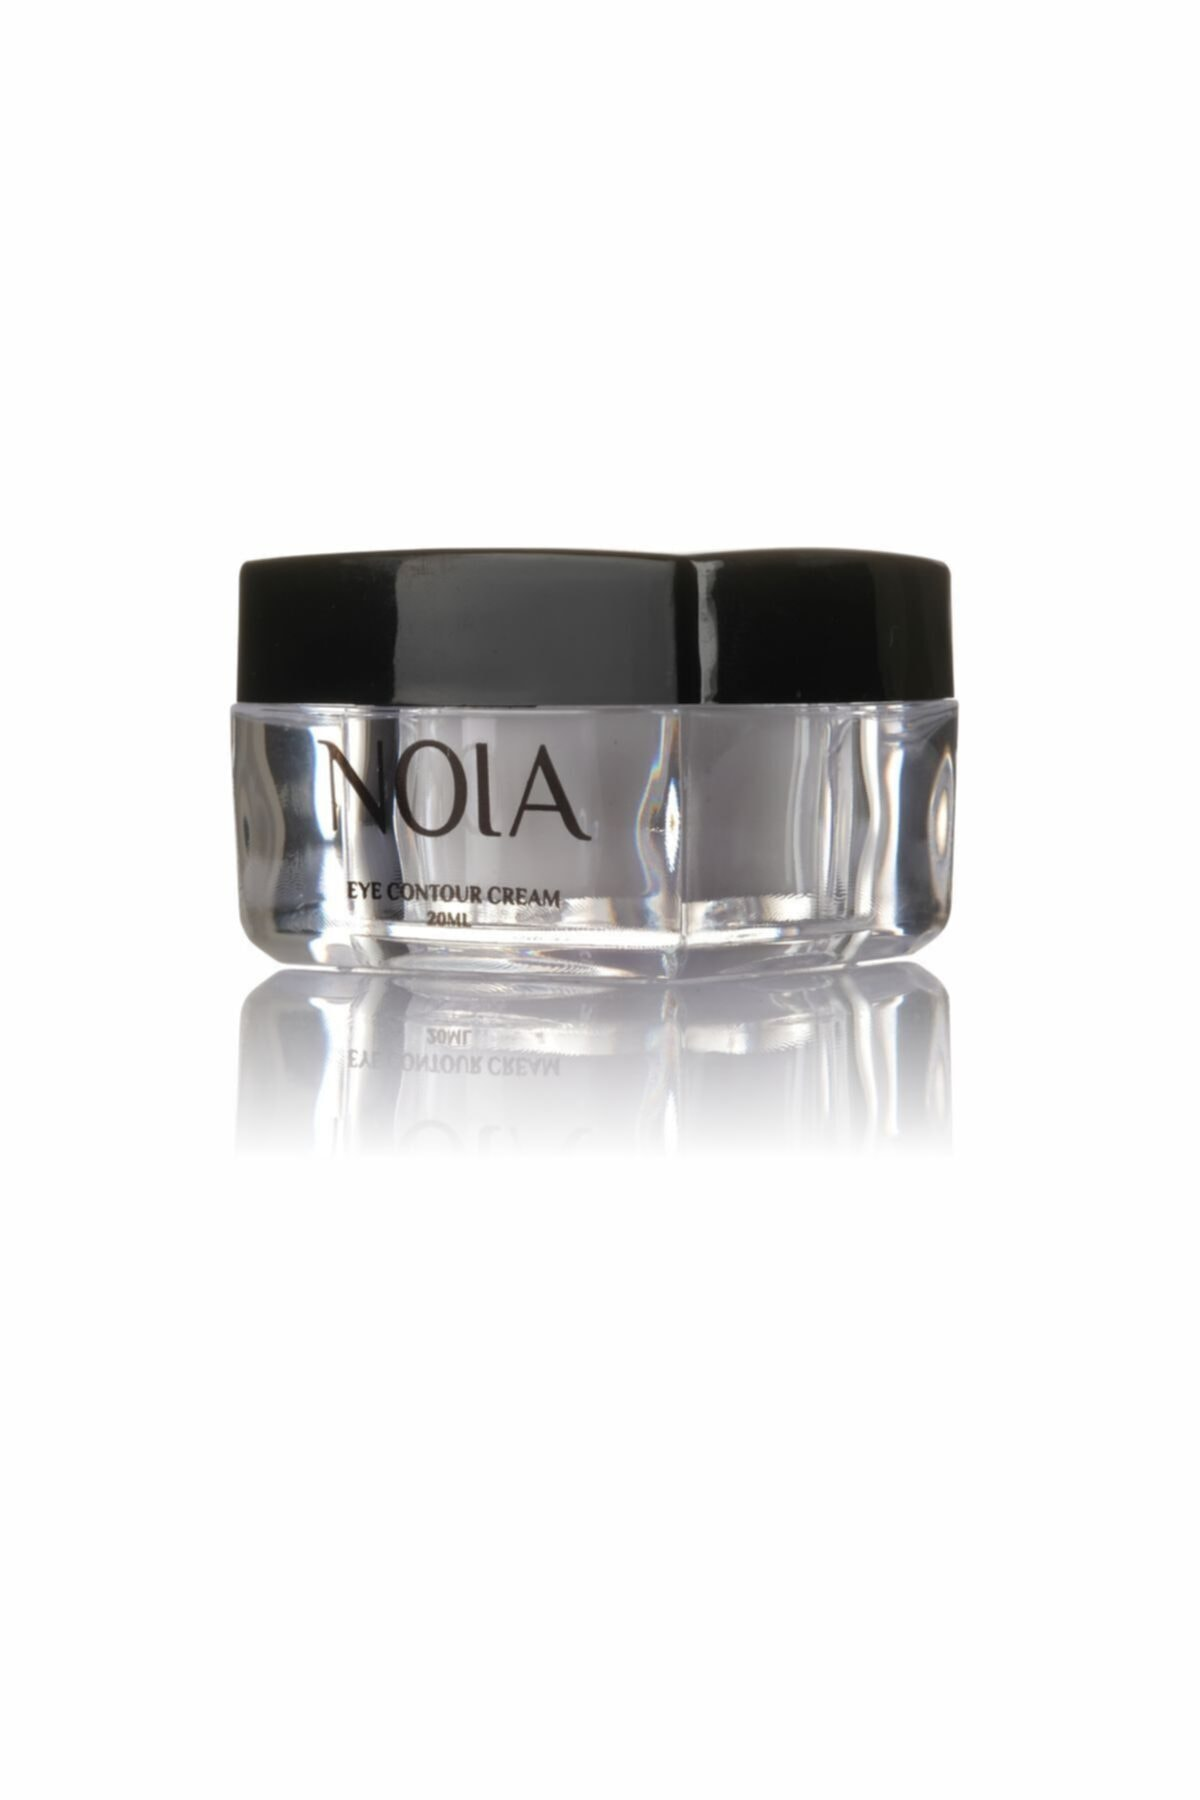 Noia Eye Contour Cream 1